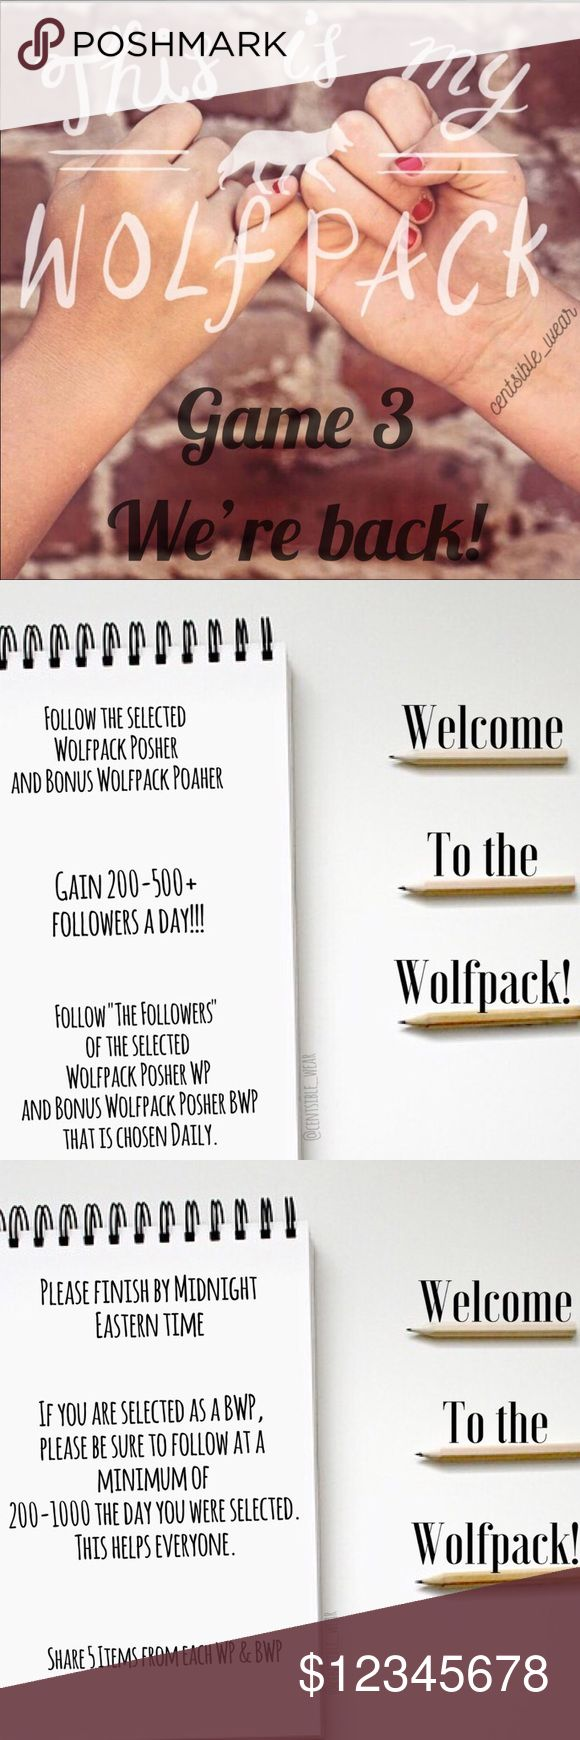 "🐺🐺GAME 3 We're Back!!!🐺🐺 New WP Follow game will resume on Monday 12/11/17. If you're still interested in being apart of if Follow game please see the new listing labeled ""GAME 3 WE'RE BACK!!!""   🐺NOTE: If you have previously signed up on the prior WOLFPACK Follow game... you are STILL on my list. There is no need to sign back up. However, please ""LIKE"" this new listing for daily updates of our Wolfpack Posher And Bonus Wolfpack Posher.   🐺😘 New WP and BWP will be posted at 12am…"